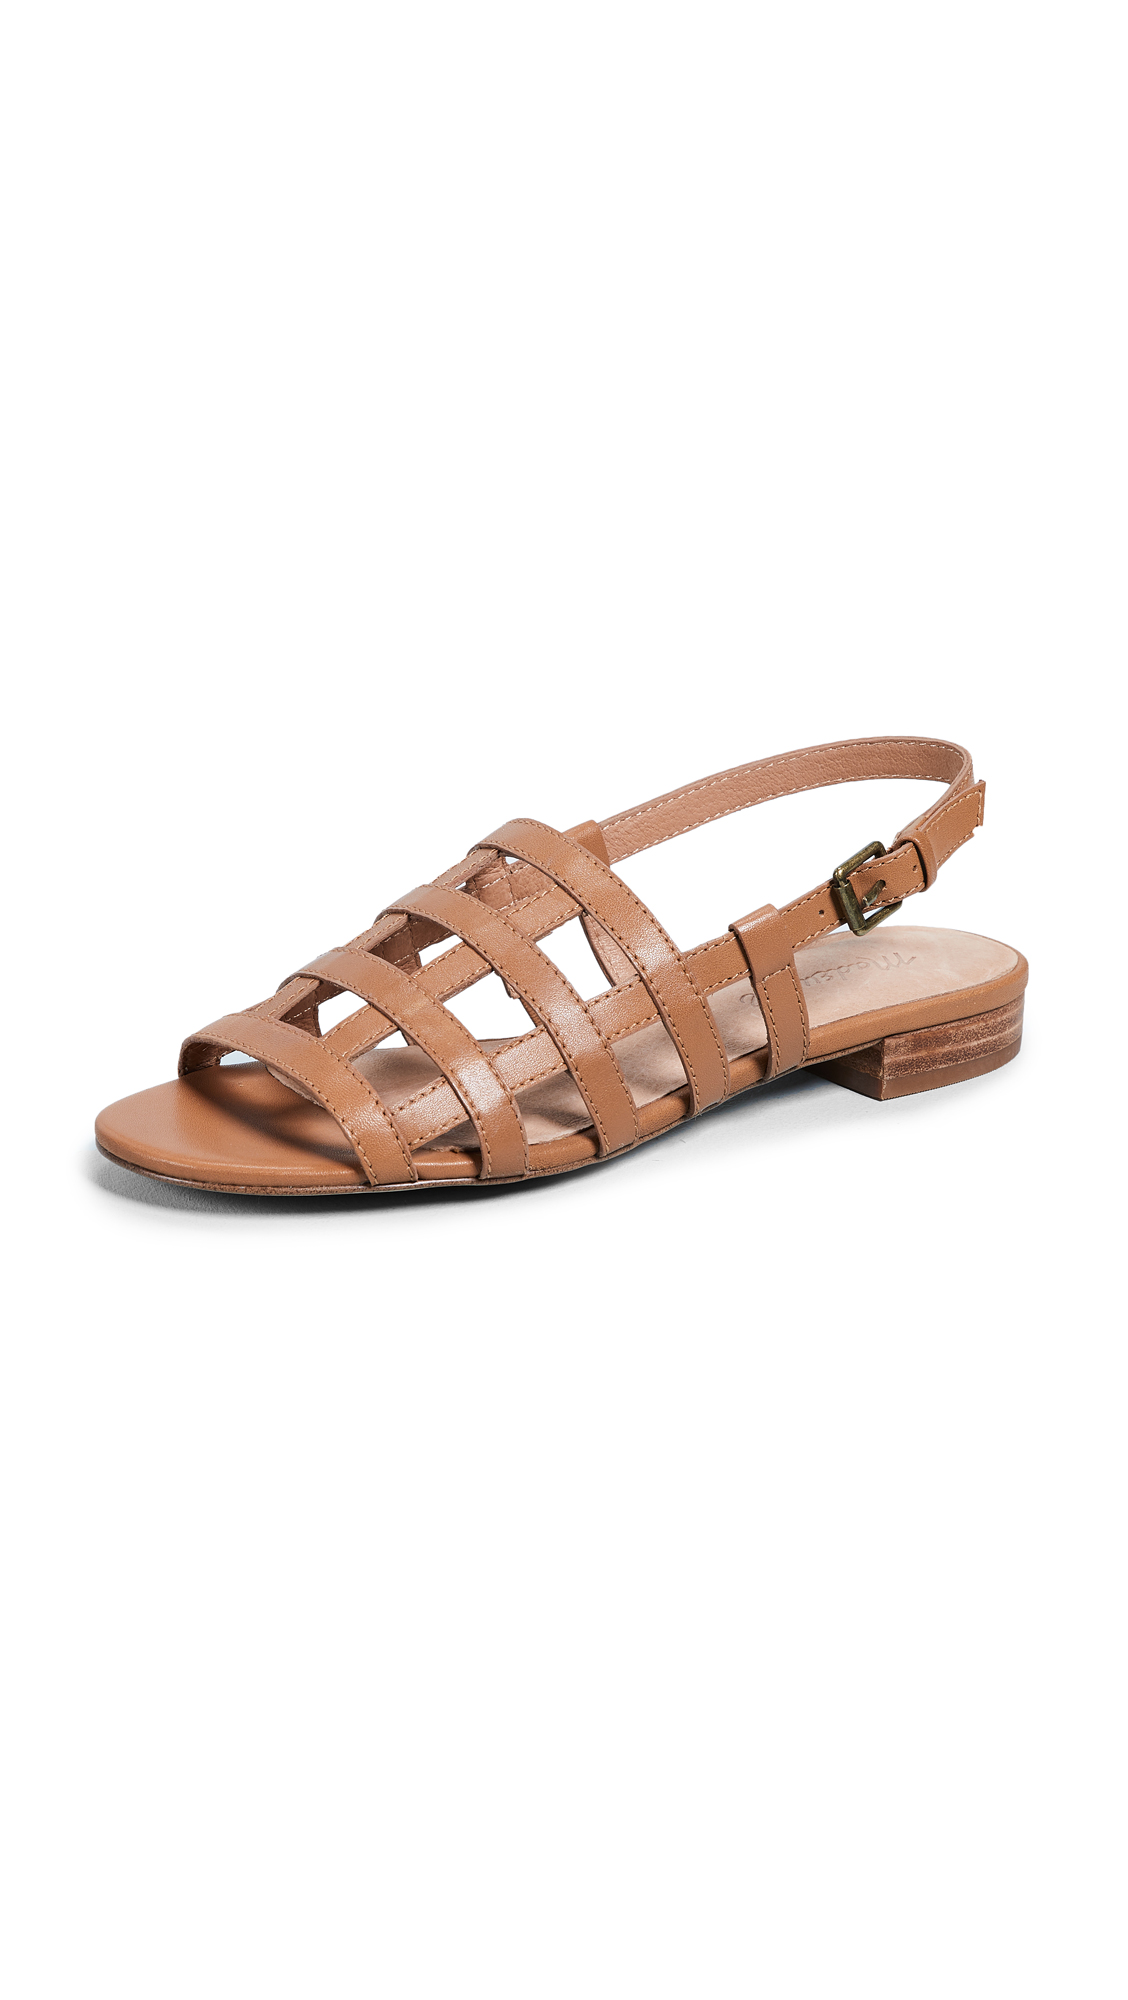 Madewell Holly Cage Sandals - Amber Brown